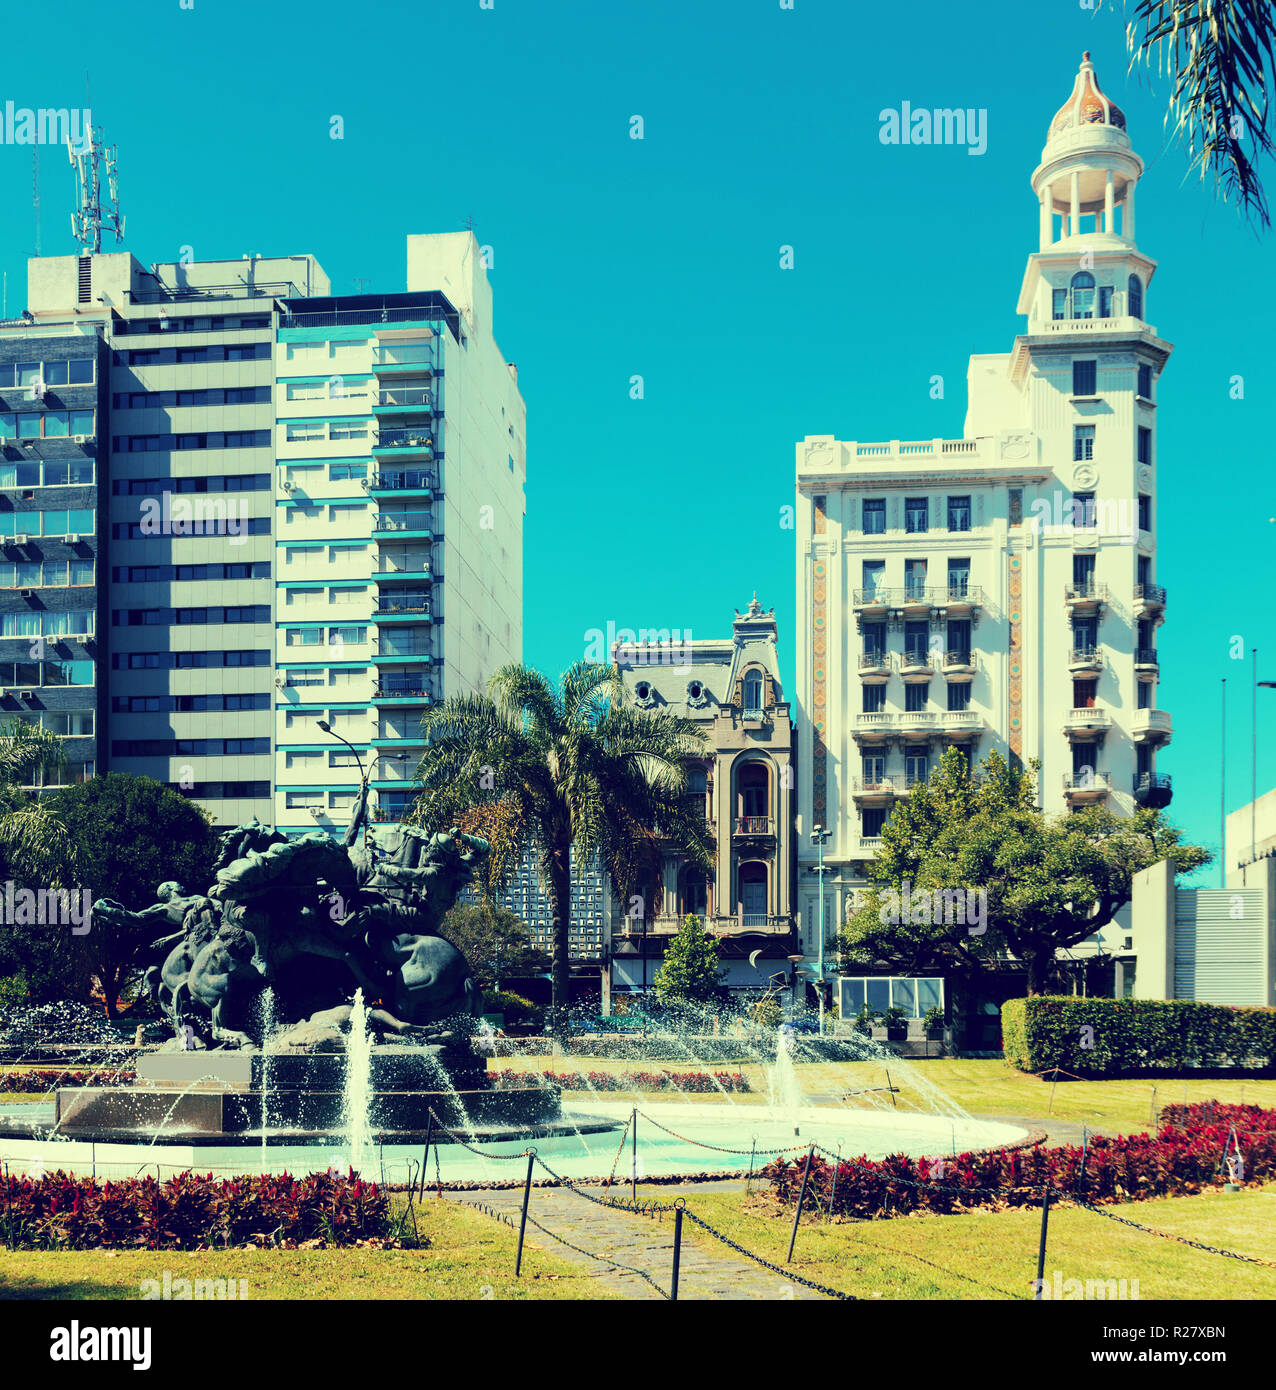 Plaza Juan Pedro Fabini with historic memorial to heroes and fountain in center of Montevideo. Uruguay, South America Stock Photo